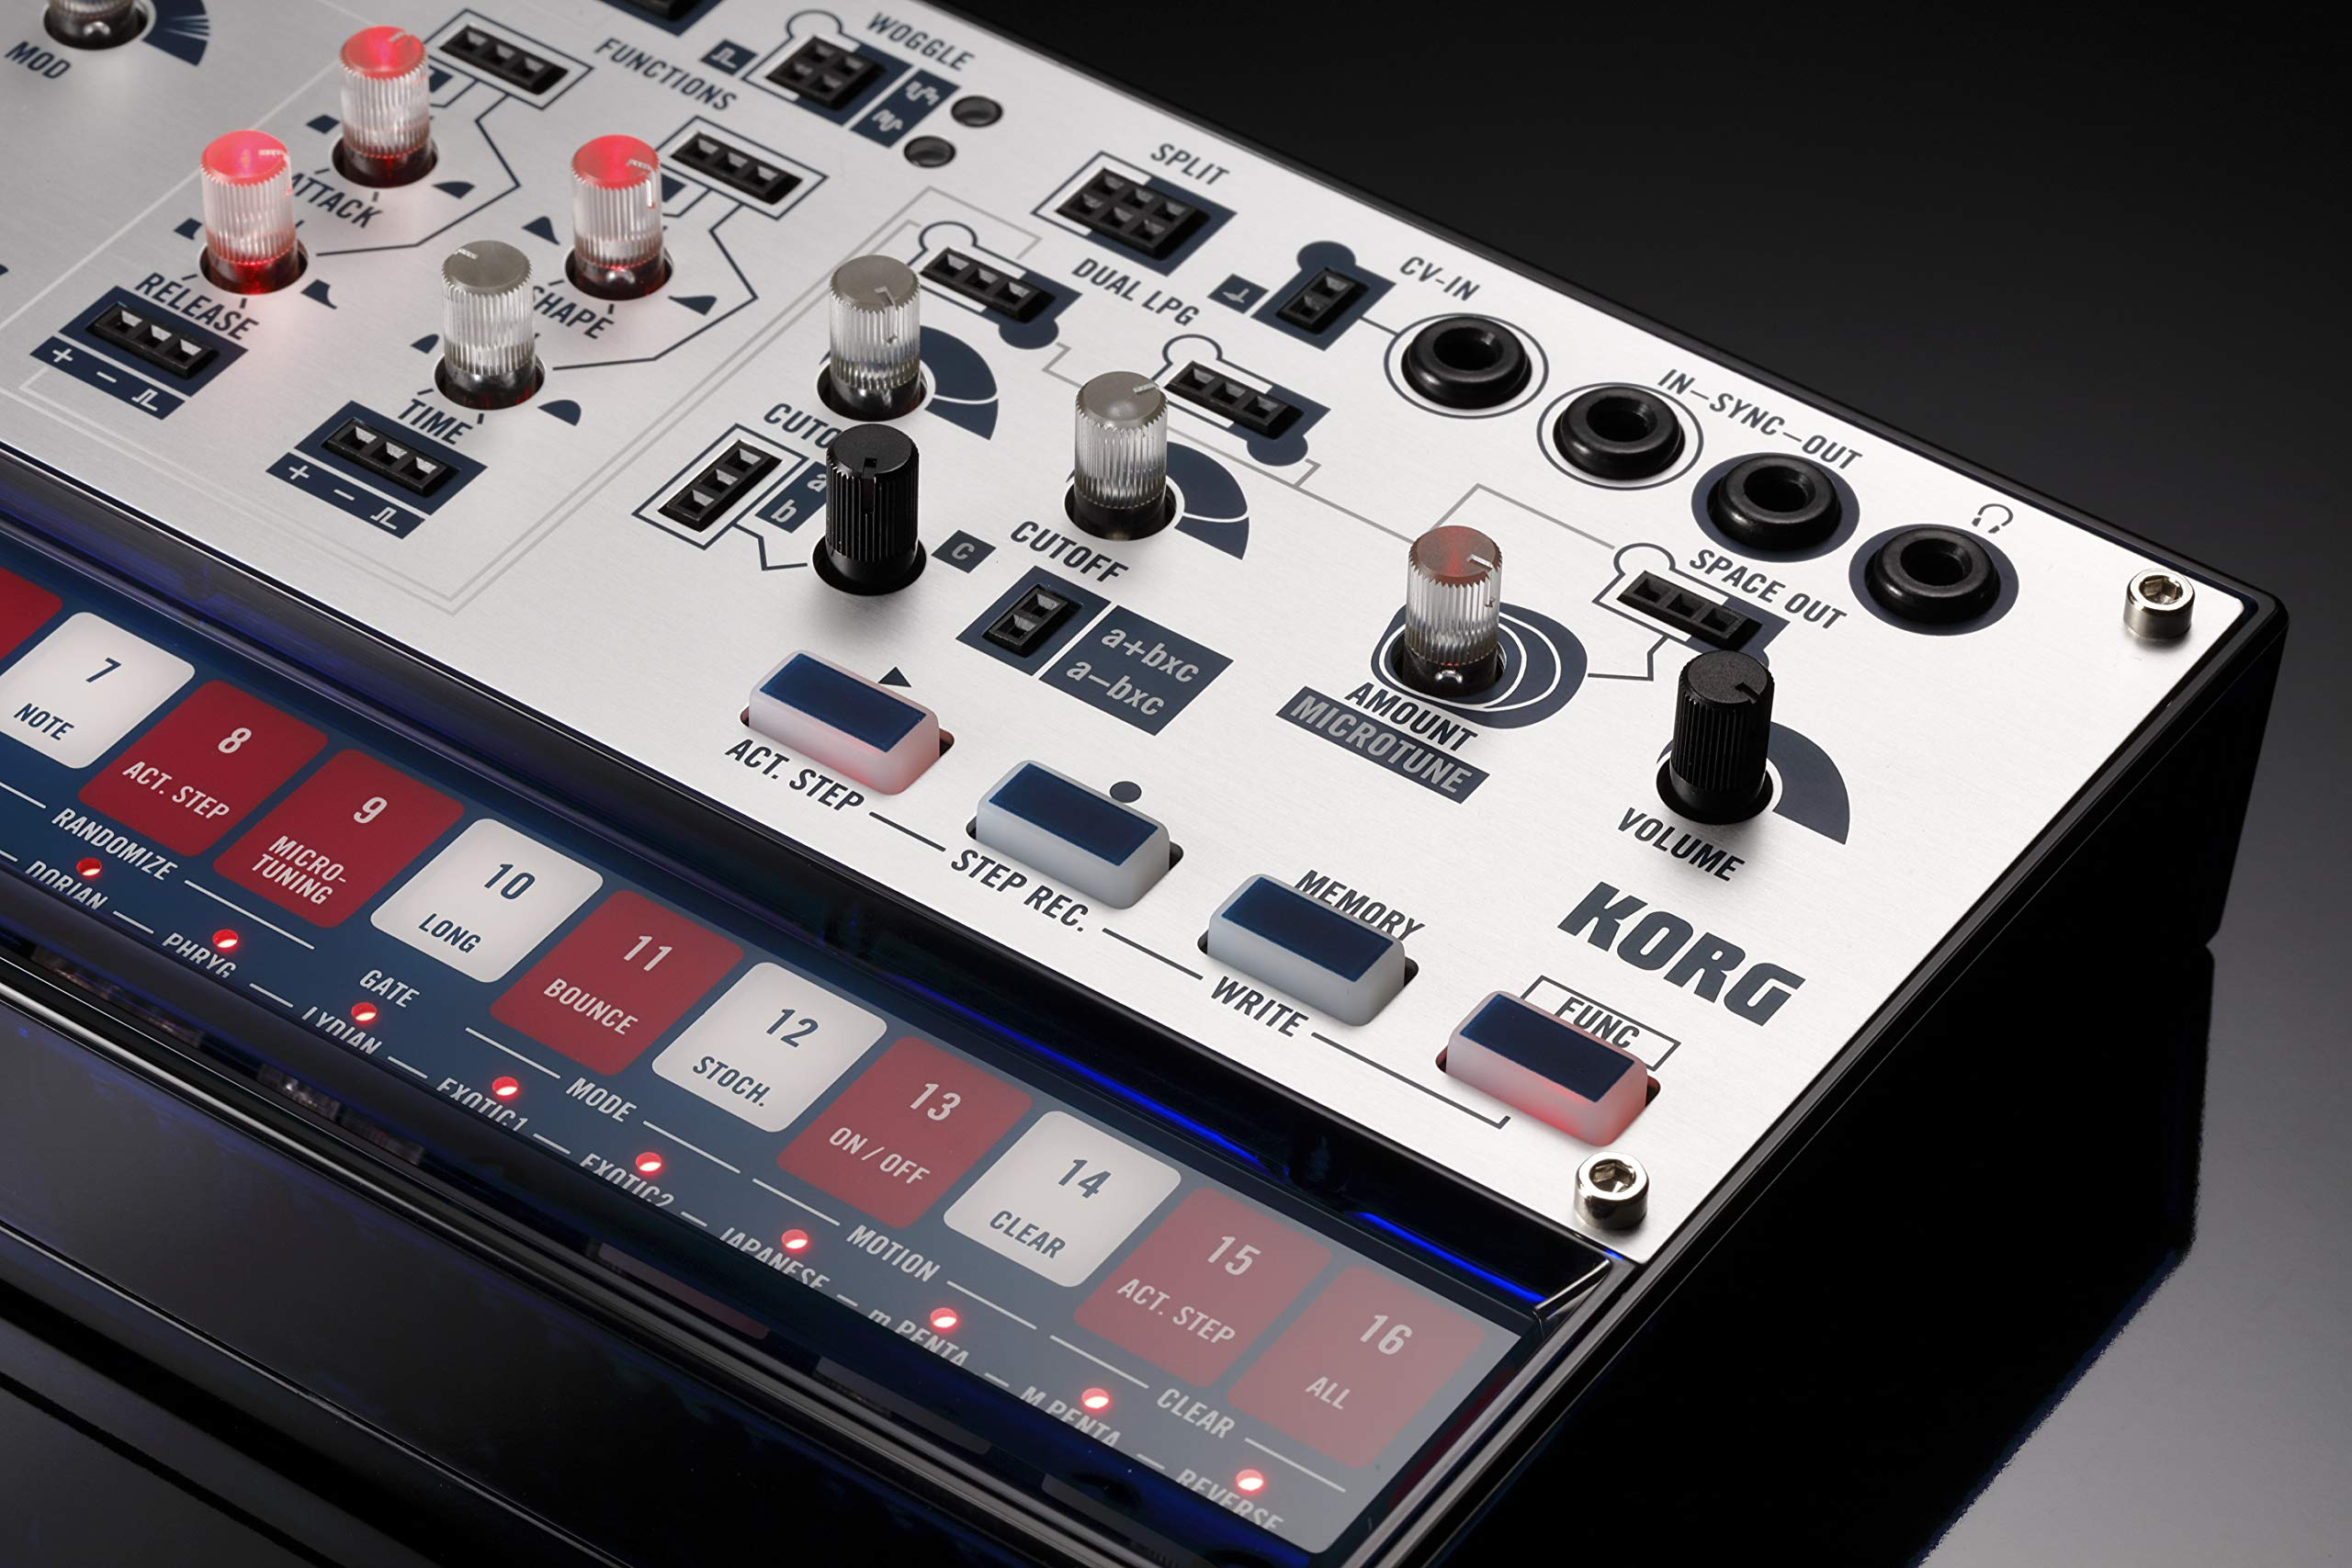 Korg Volca Modular Semi-Modular Synthesizer with Sequencer by Korg (Image #13)